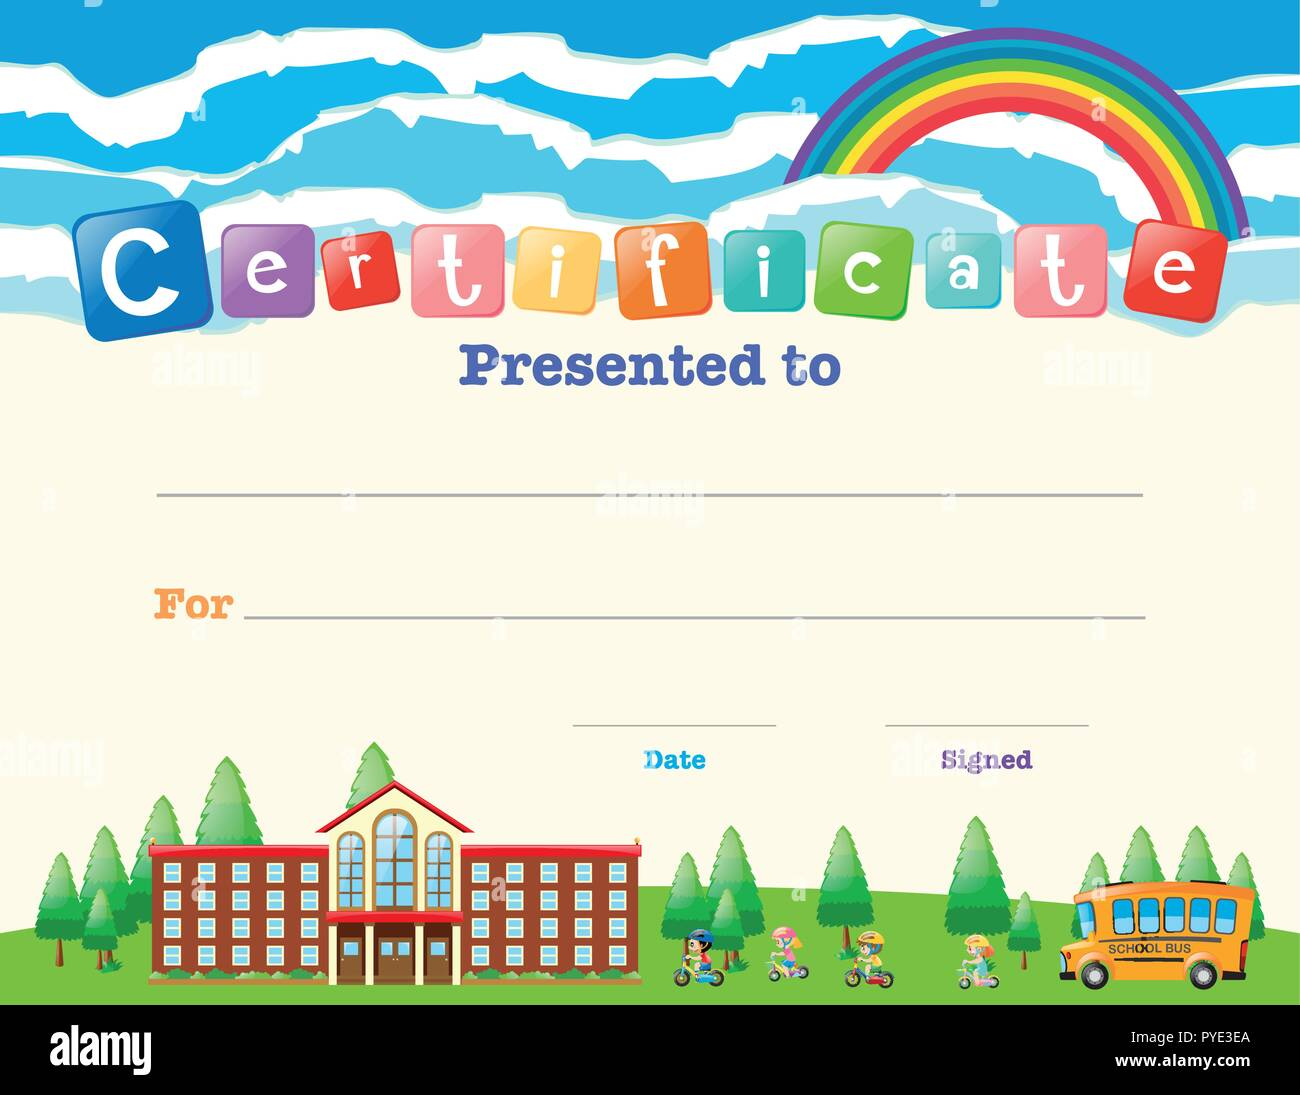 Certificate Template With Kids At School Illustration Stock Vector